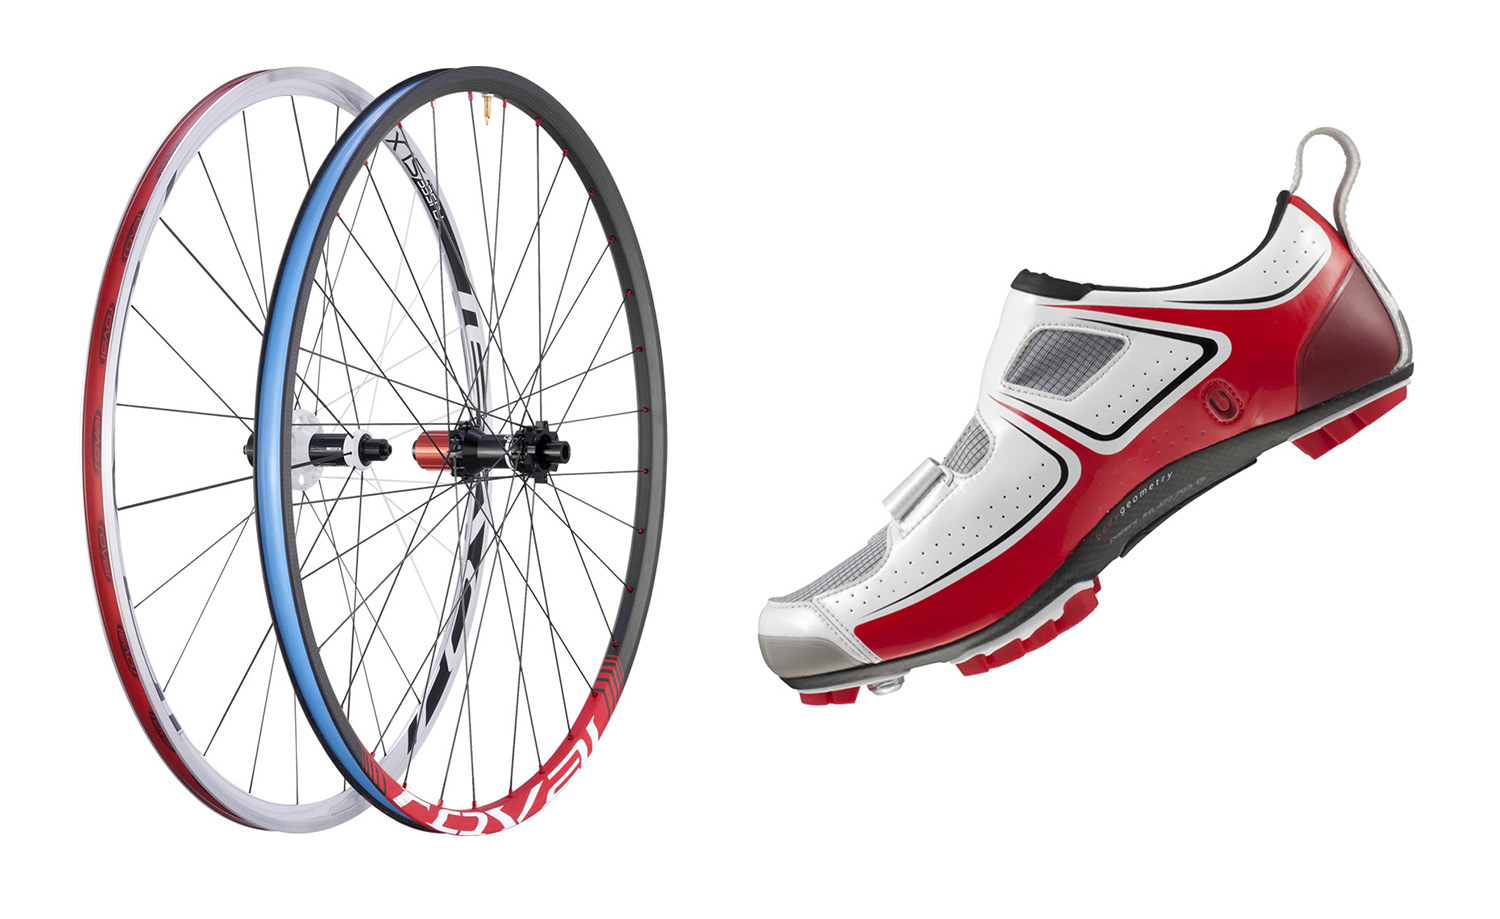 Specialized Wheels and Shoe